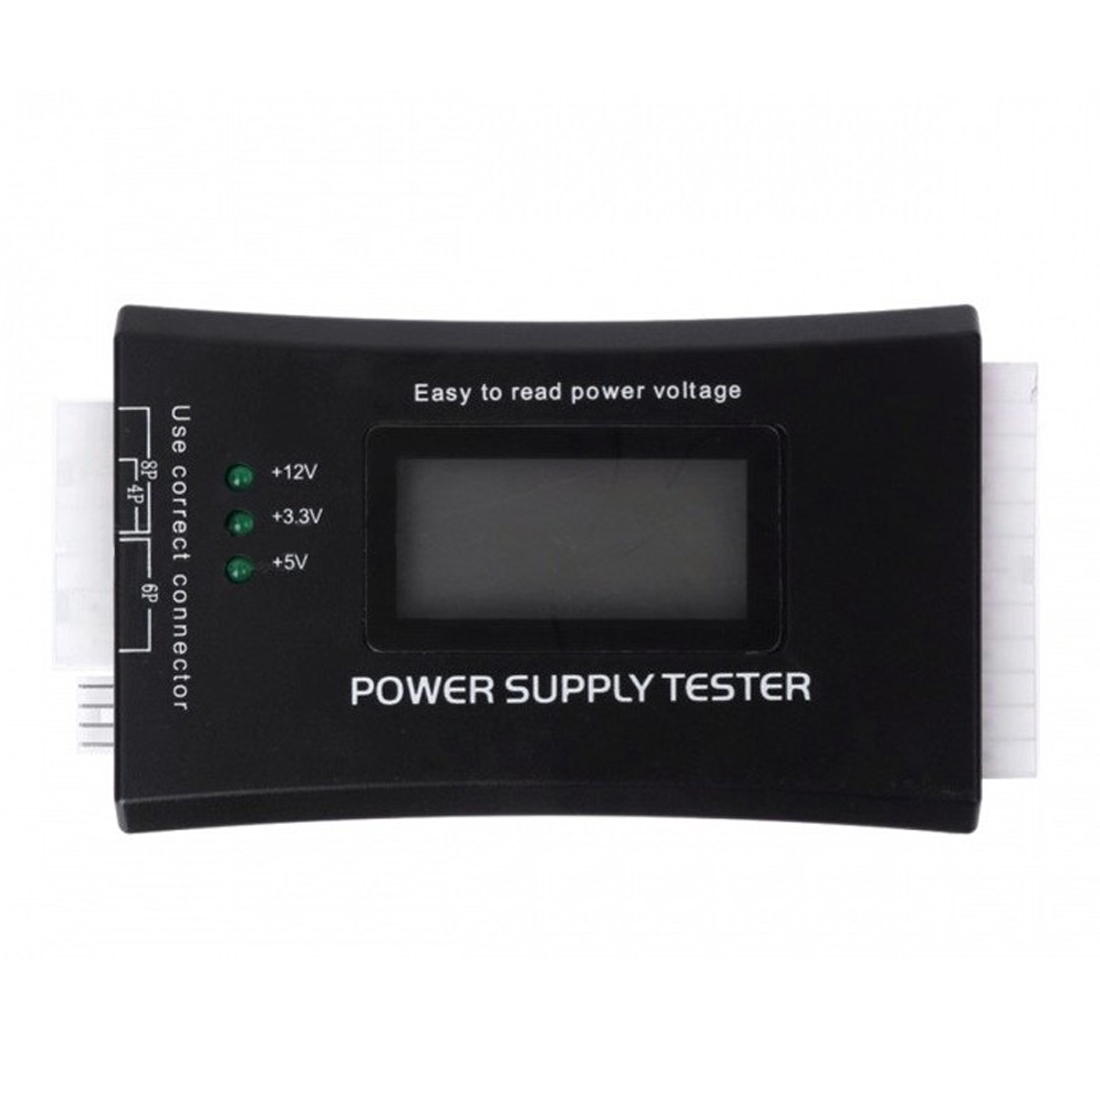 Digital LCD Power Supply Tester Multifunction Computer 20 24 Pin Sata LCD PSU HD ATX BTX Voltage Test SourceDigital LCD Power Supply Tester Multifunction Computer 20 24 Pin Sata LCD PSU HD ATX BTX Voltage Test Source